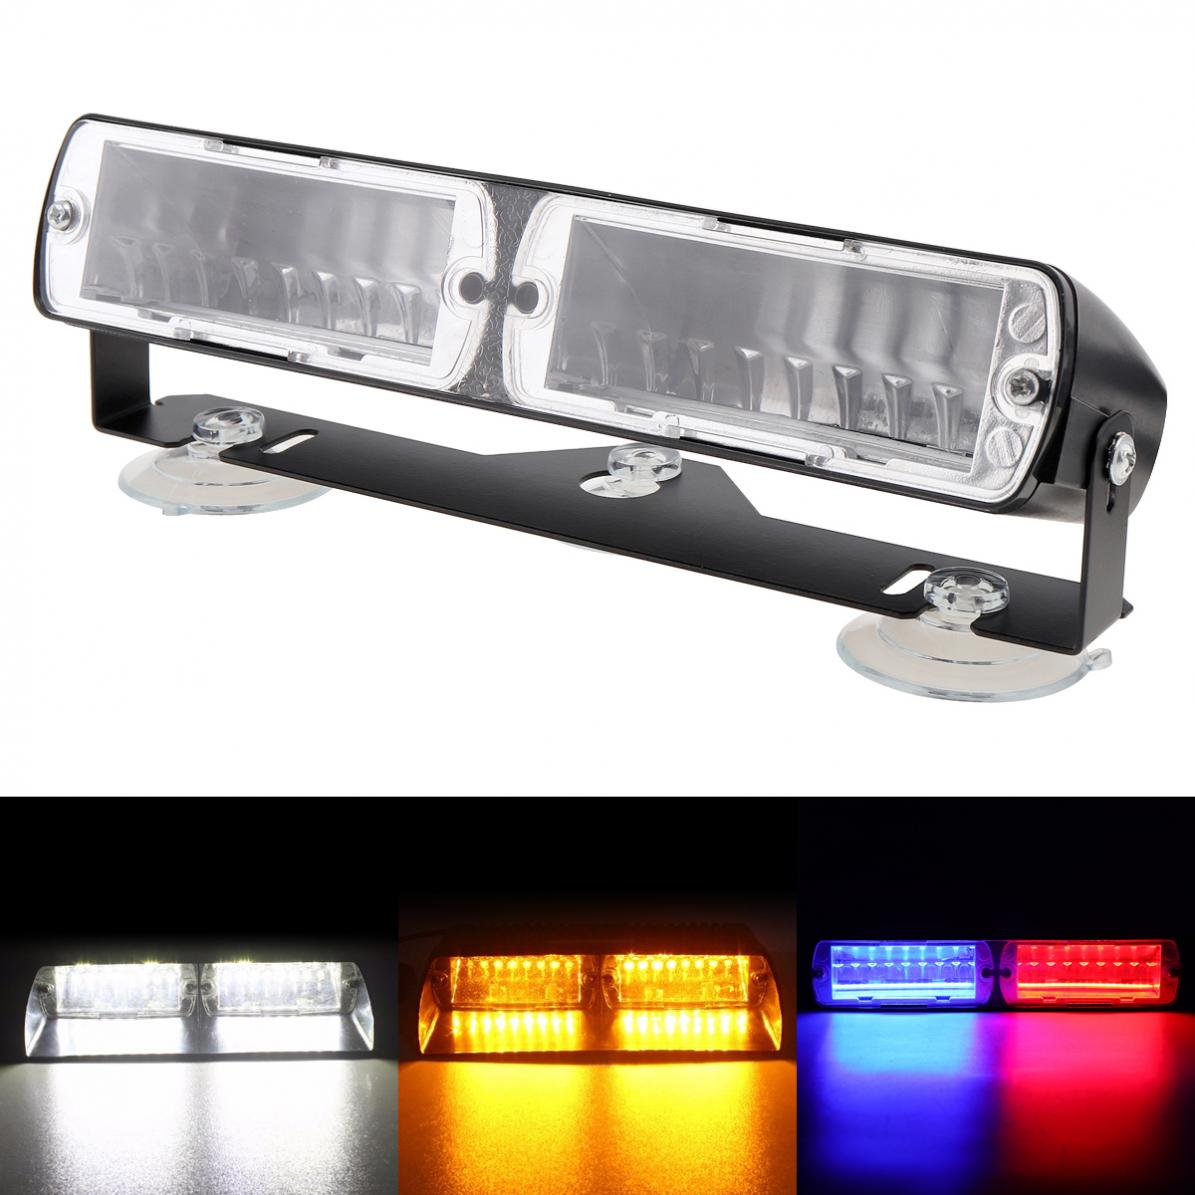 Luz Led Intermitente 16led 48 W Viper S2 Super Brillante Señal Led Intermitente Luz De Advertencia De Policía Strobe